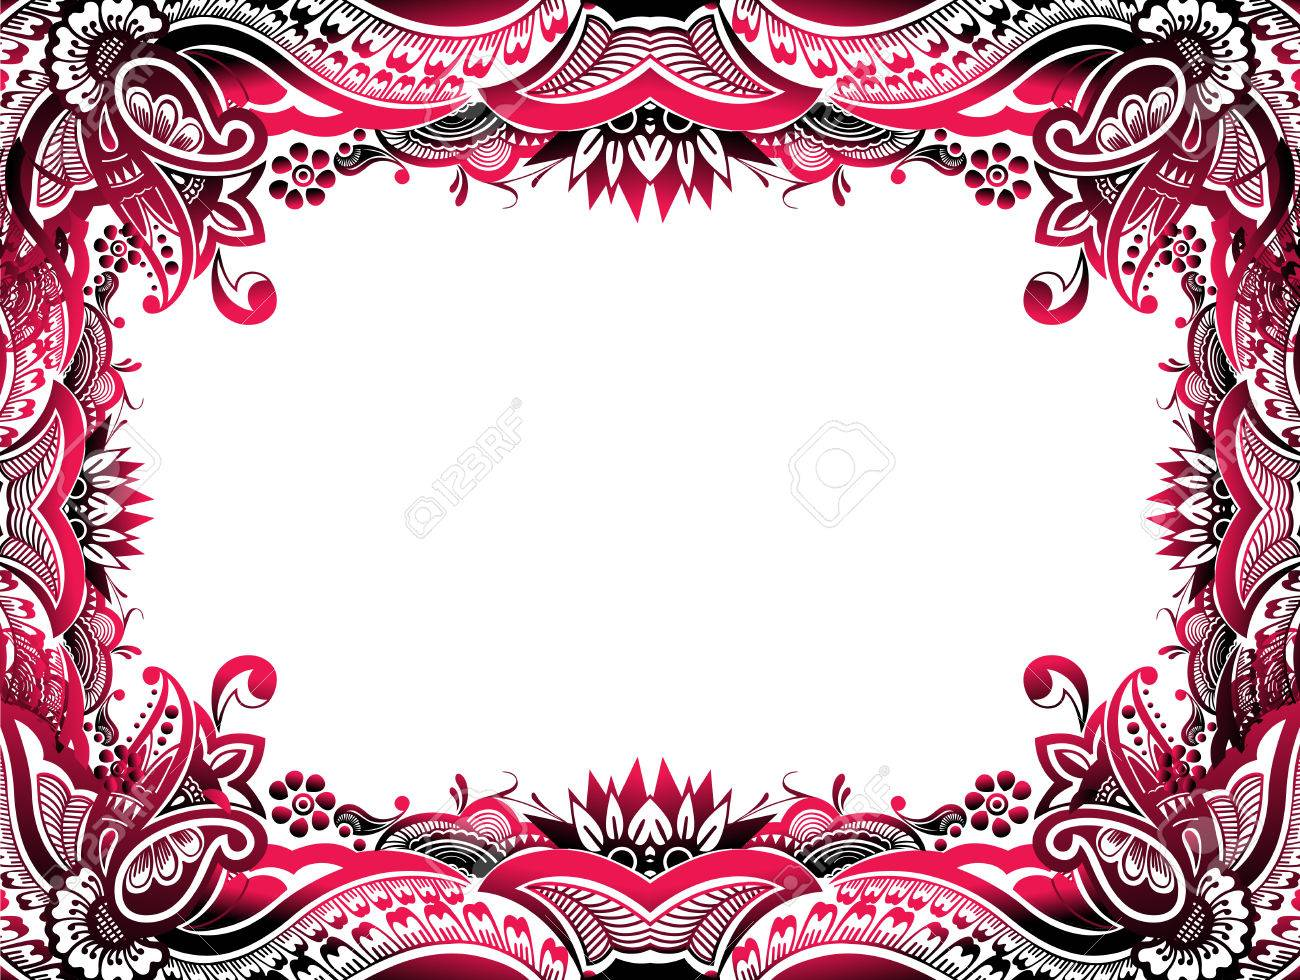 Abstract Floral Border Background Easy To Edit Of Your Project